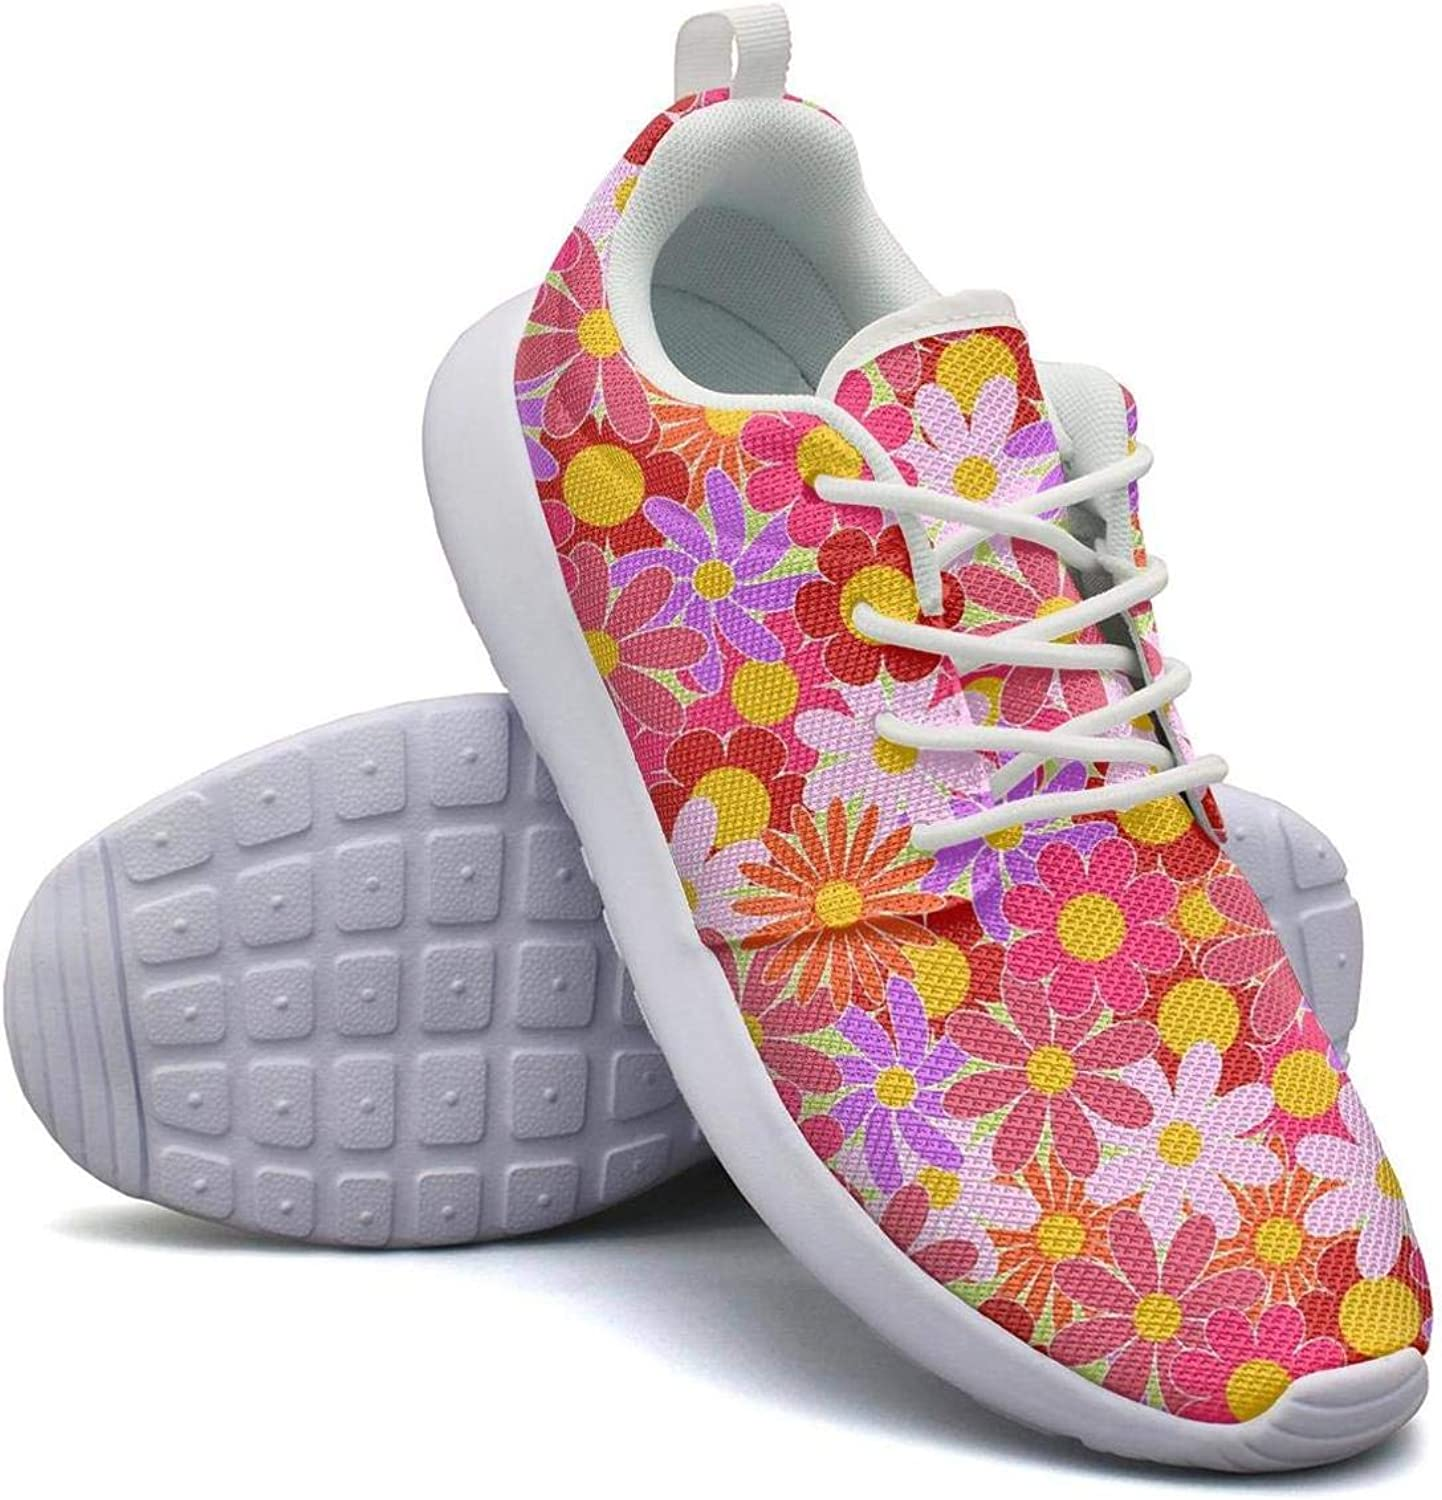 CHALi99 Casual Females Lightweight Mesh shoes Red Daisy Floral Sticker Sneakers Workout Lace-Up